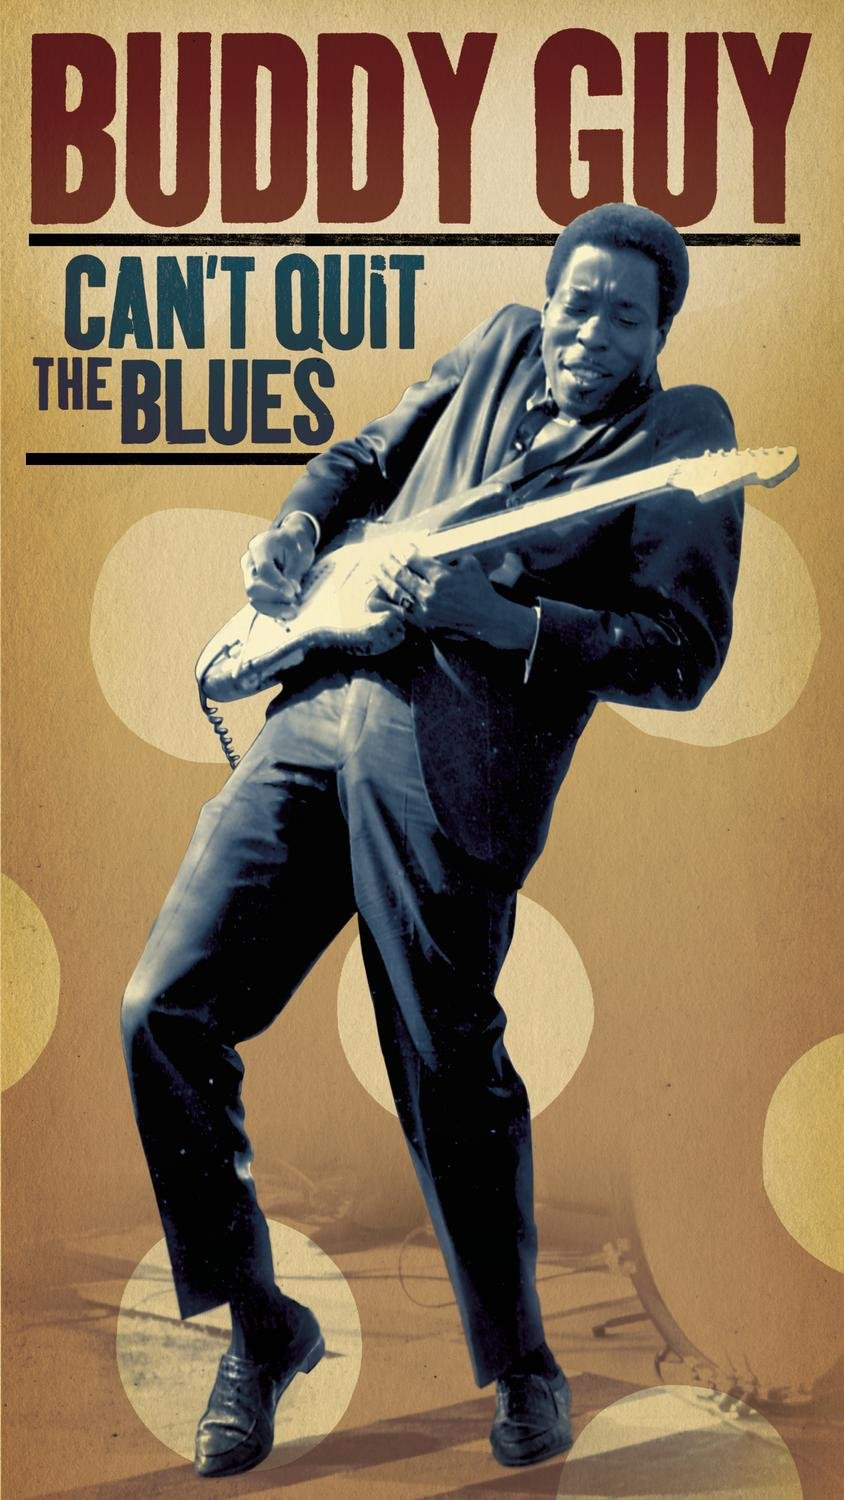 Can't Quit The Blues by Guy, Buddy